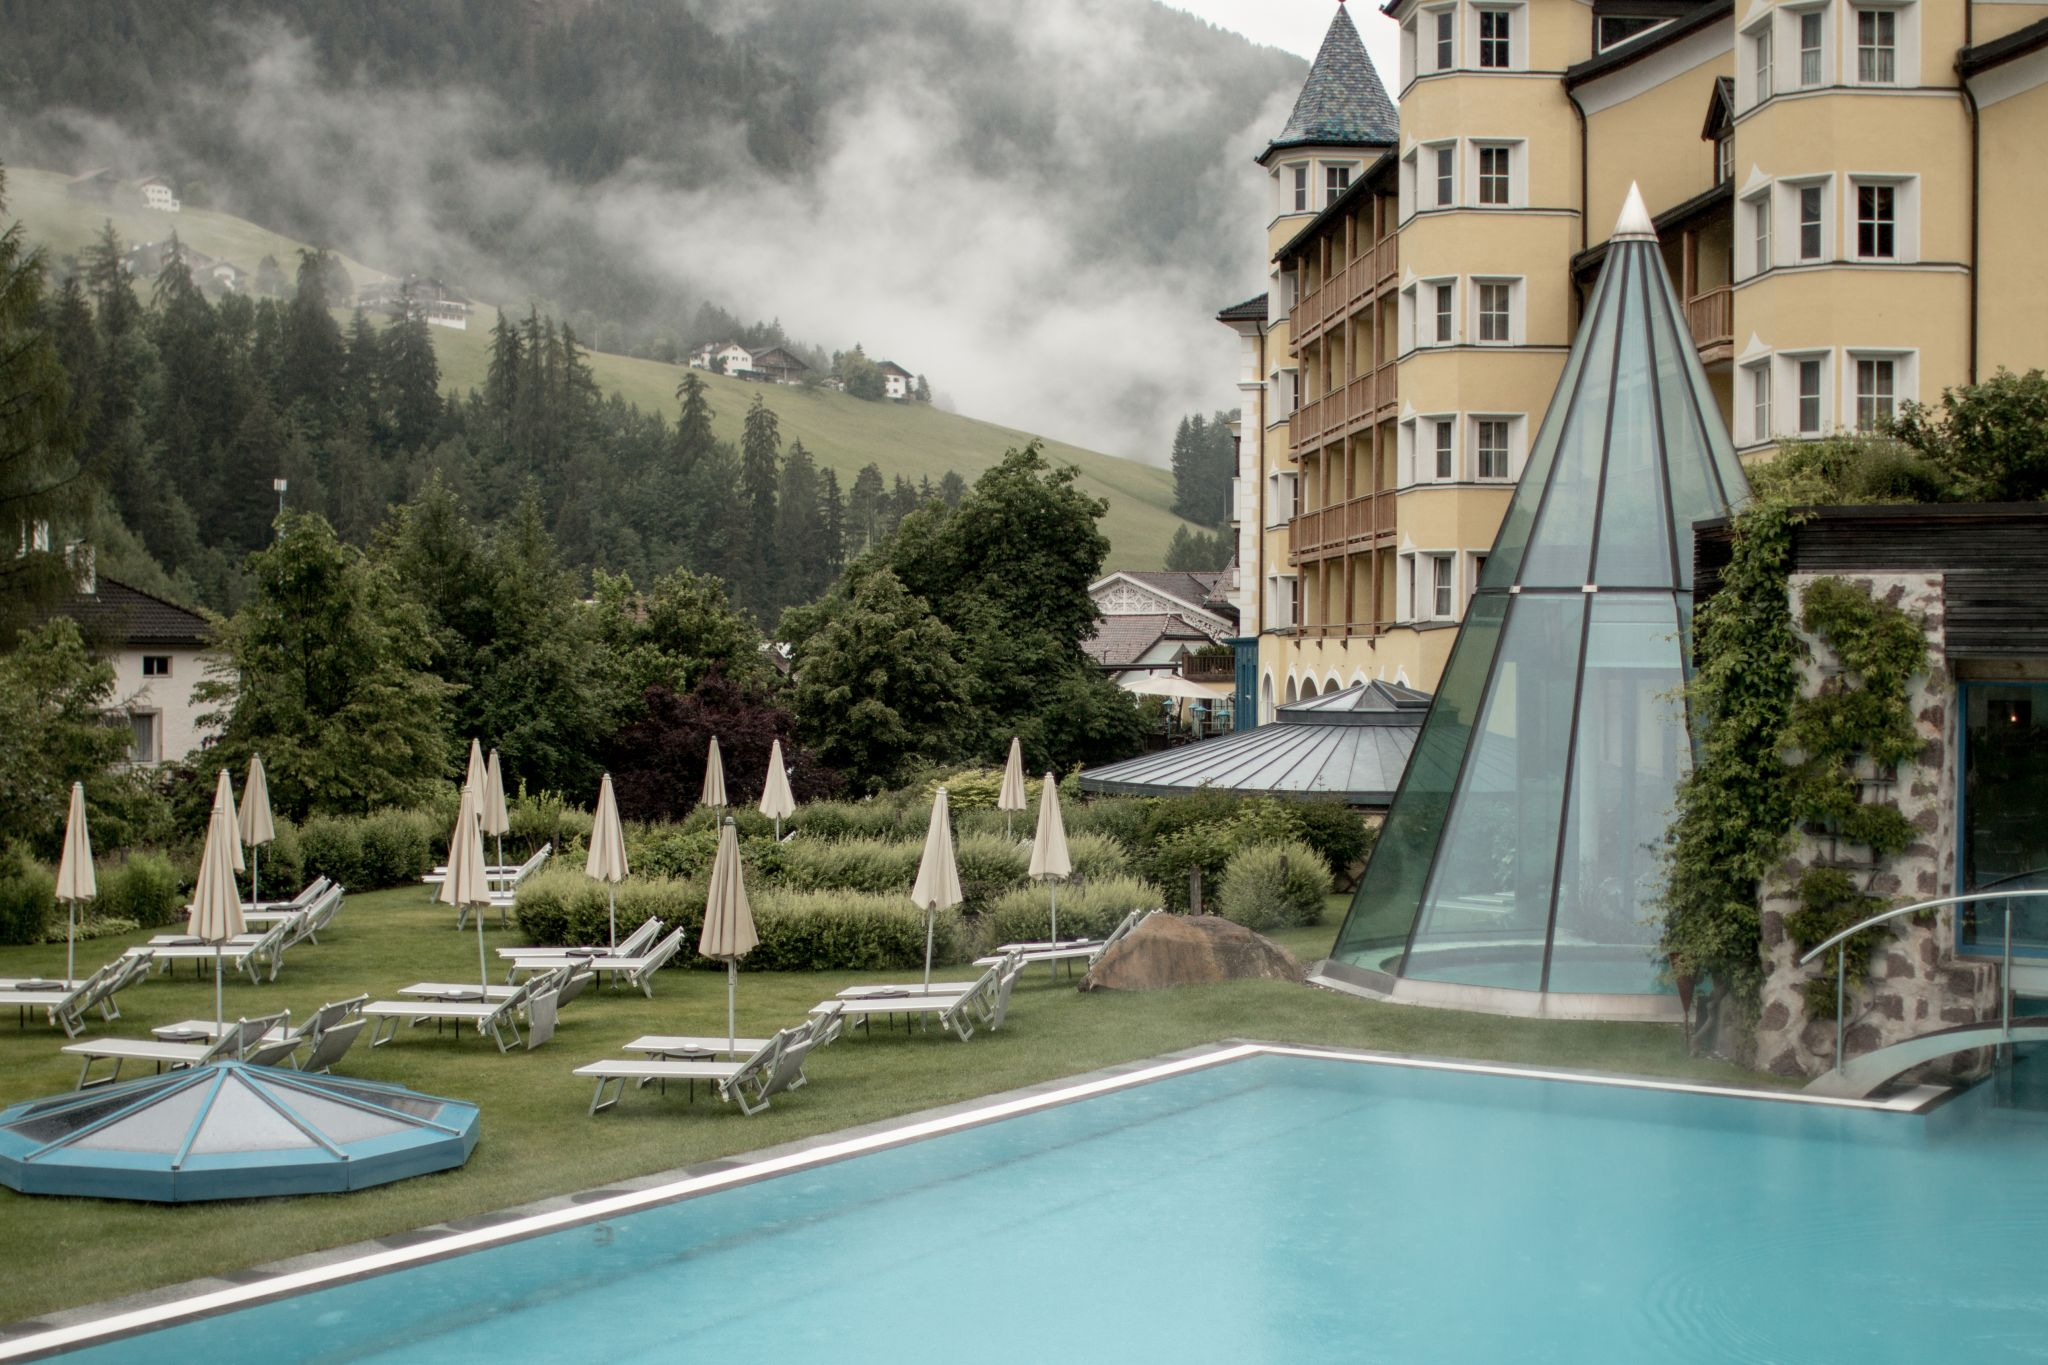 Adler Dolomites Hotel Ortisei Italy Hotel Hospitality Brand Photography Exterior poolside clouds glass pyramid